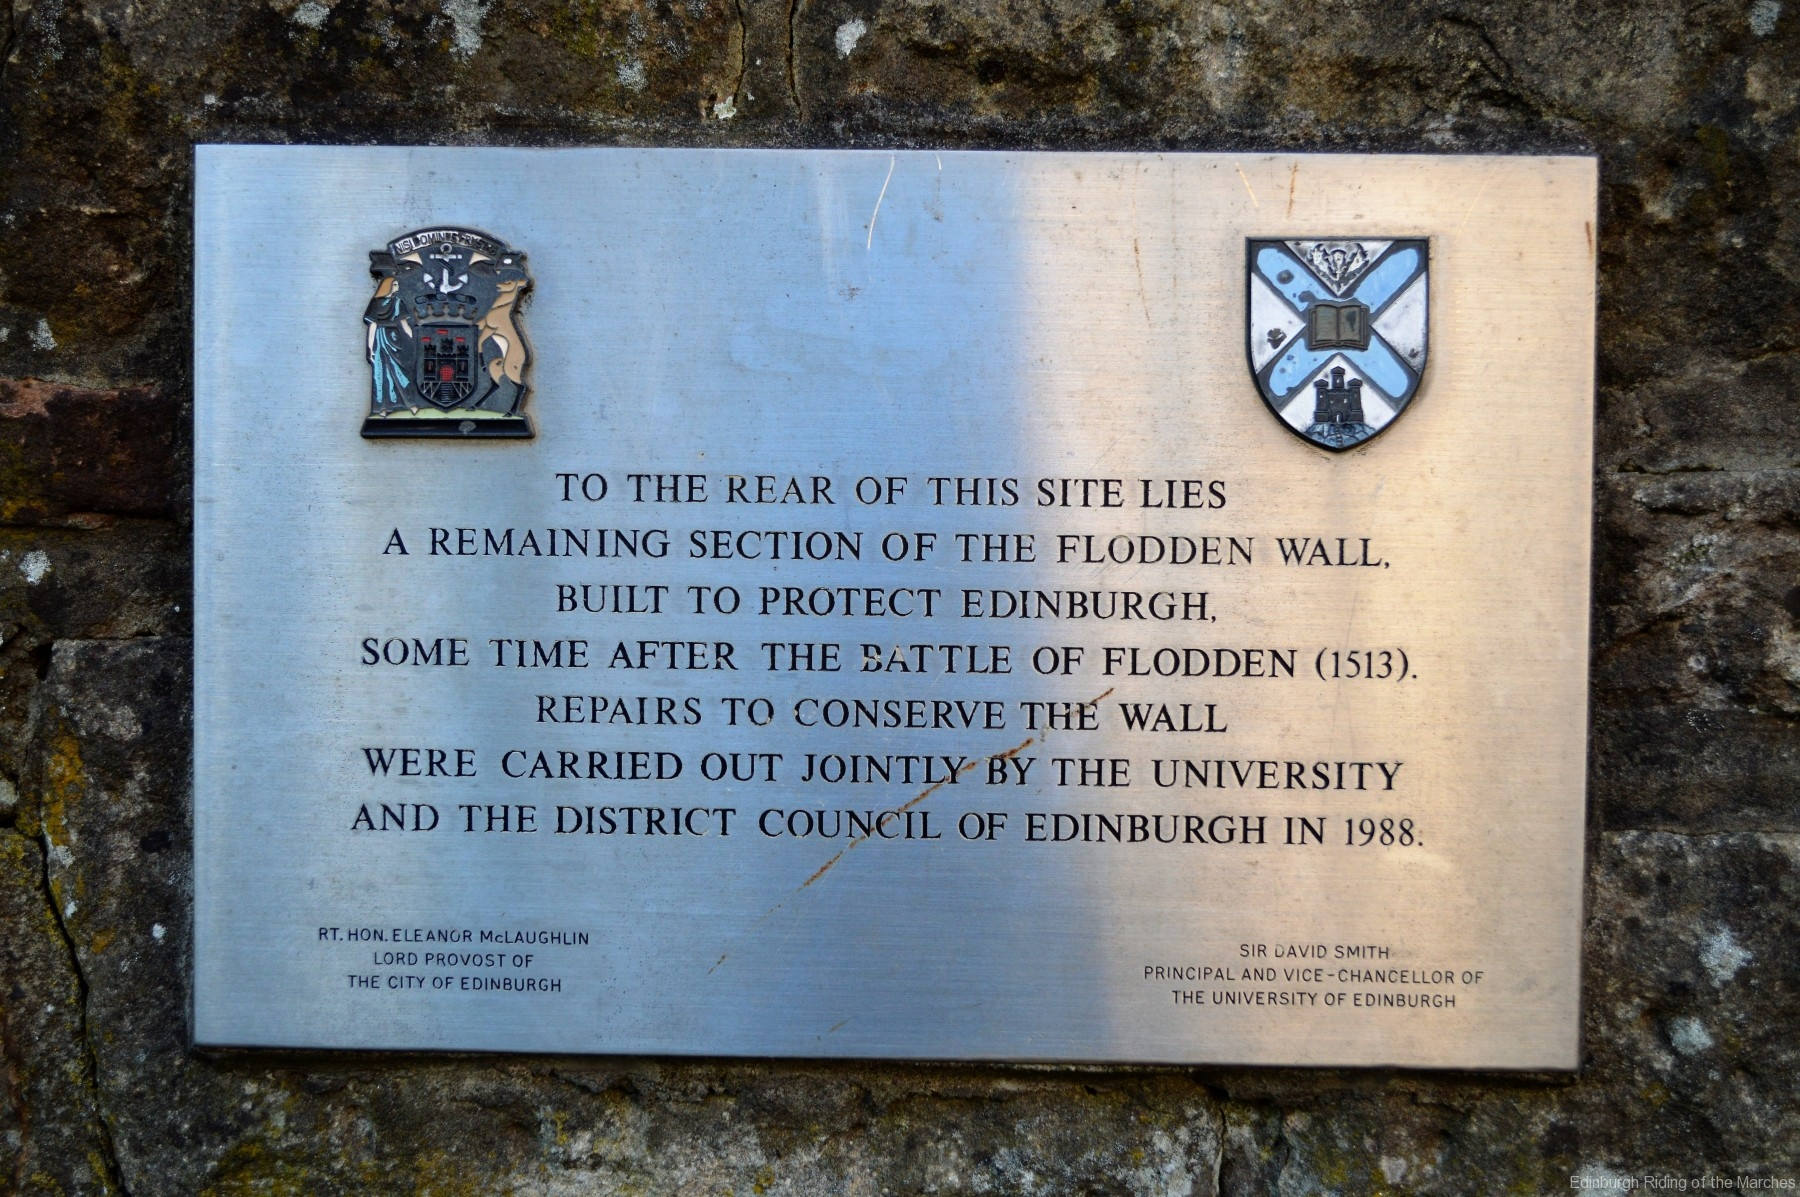 Plaque regarding Flodden Wall